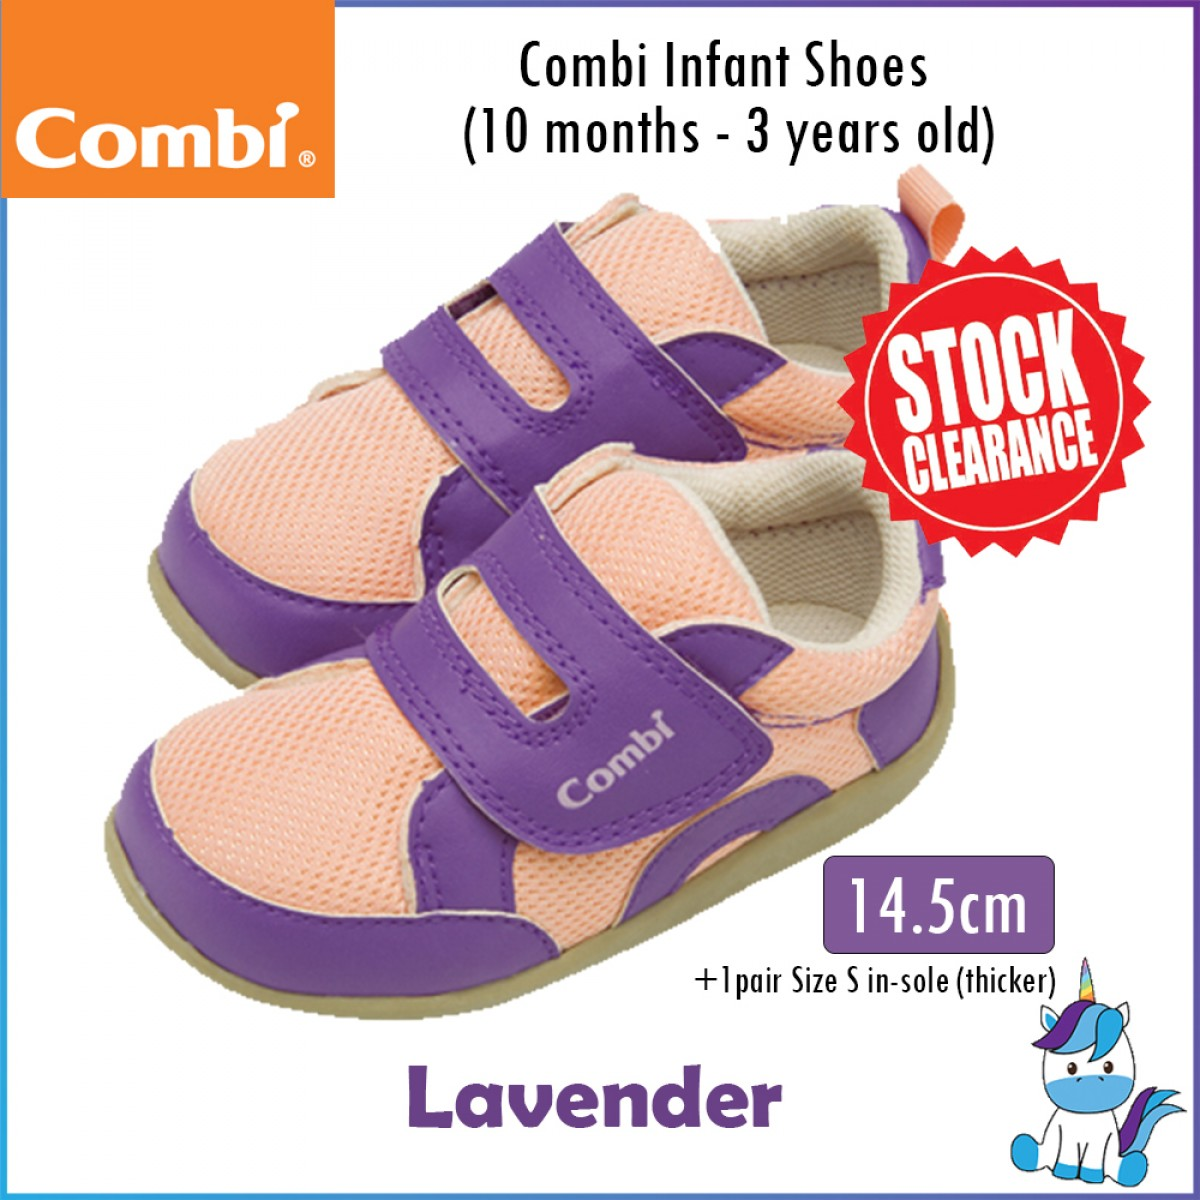 Combi Infant Shoes: 10 months - 3 years old [STOCK CLEARANCE]